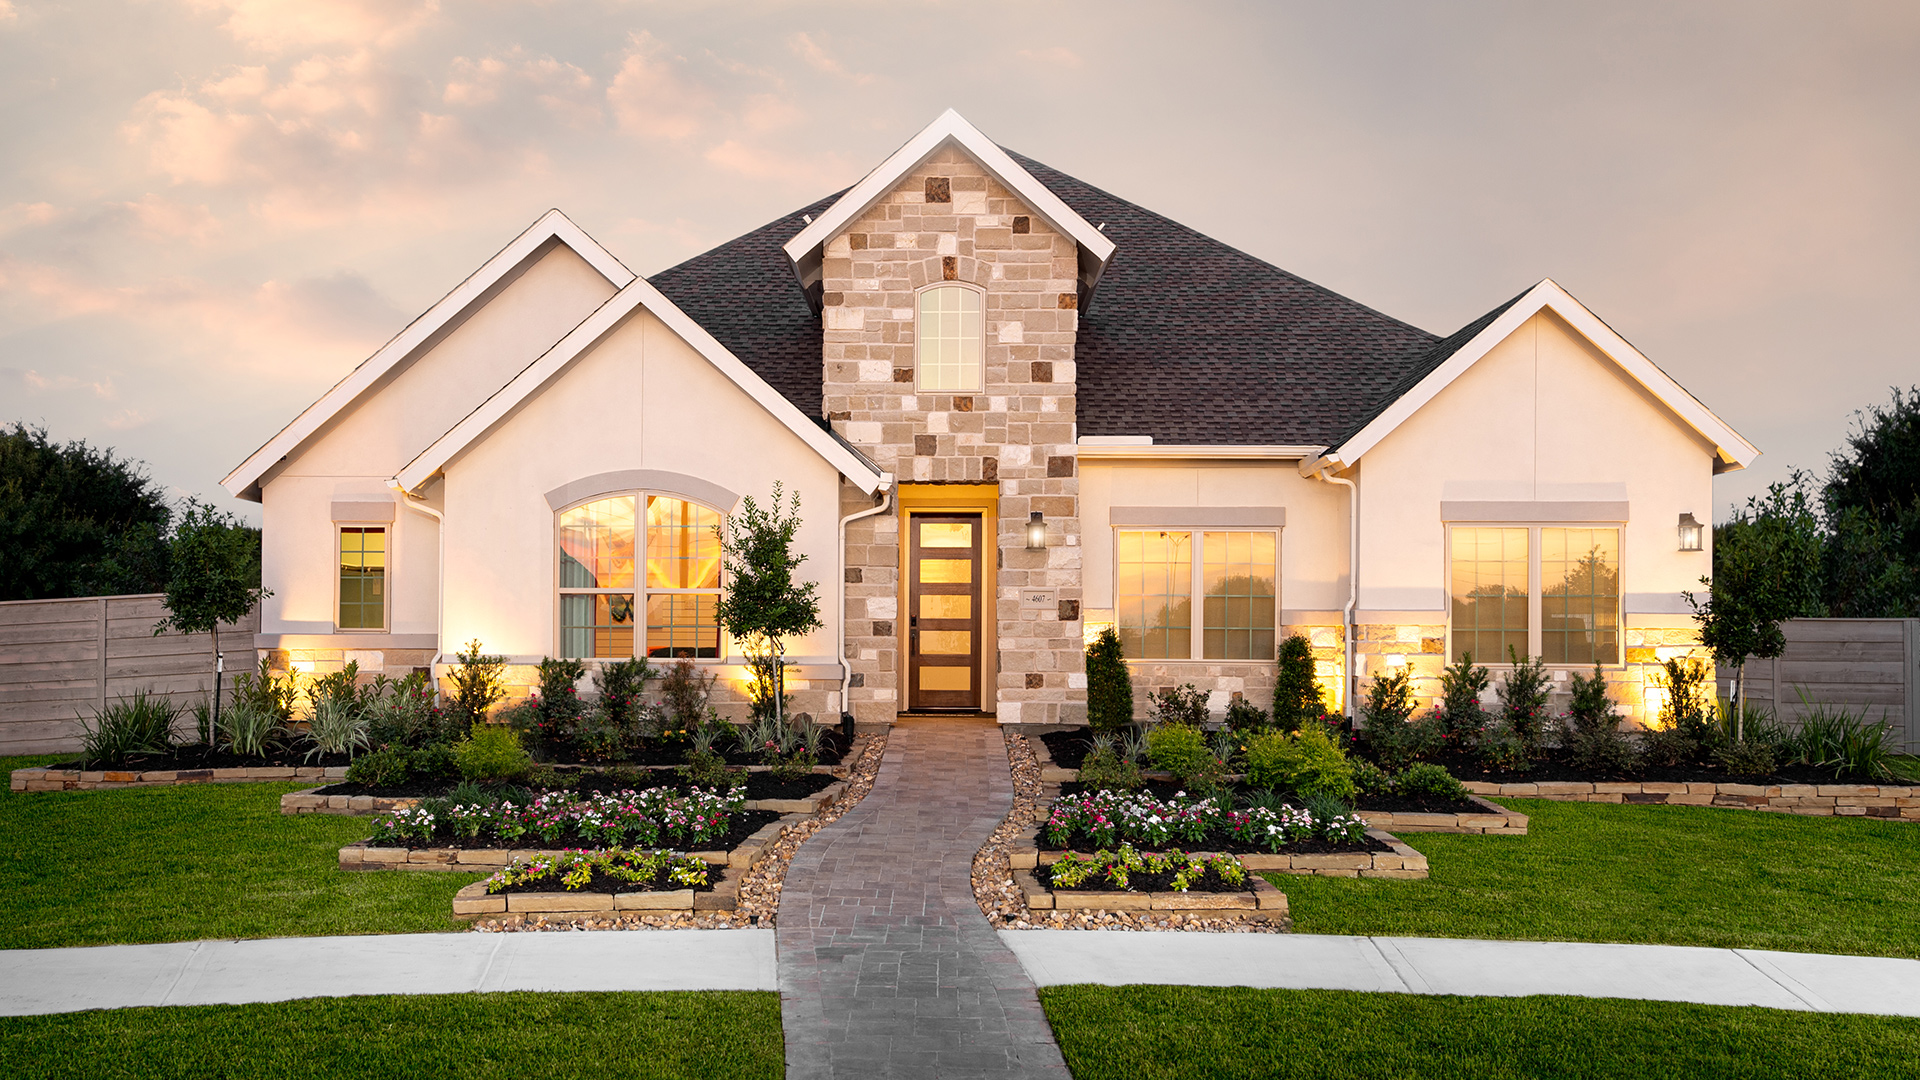 Loralai model home at Pomona - Select Collection